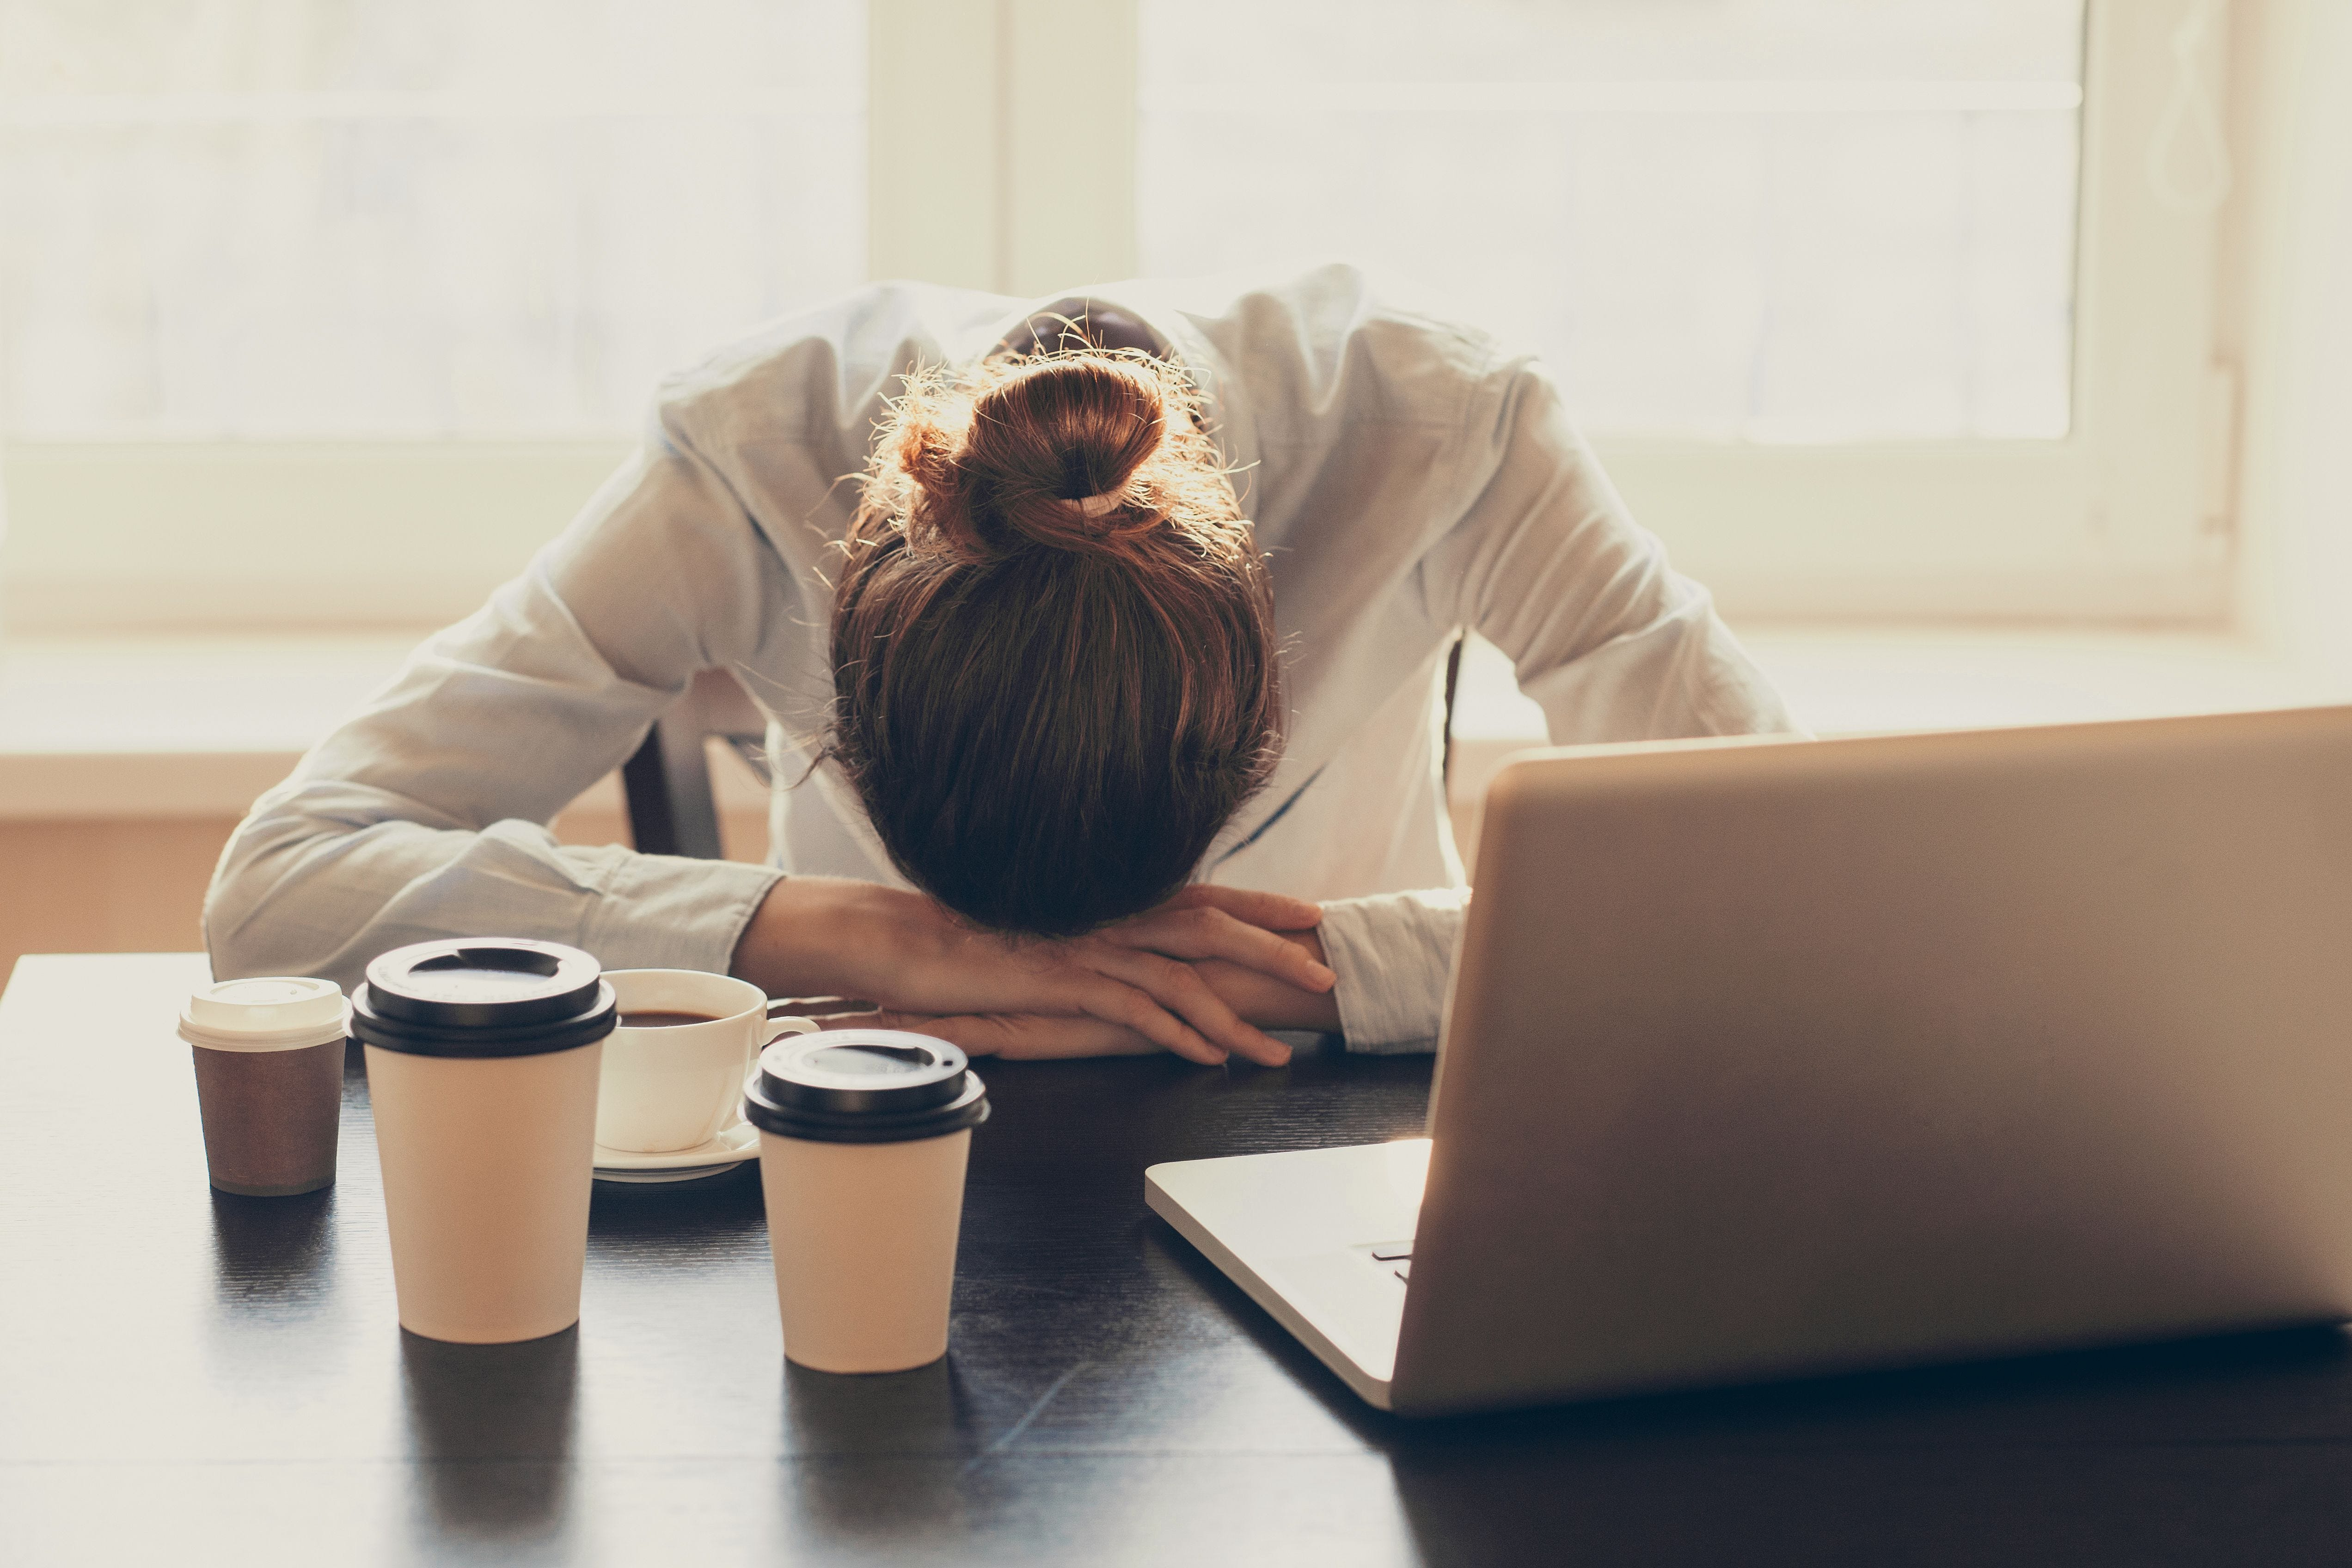 Overworked? Join the club. Here's how to handle it